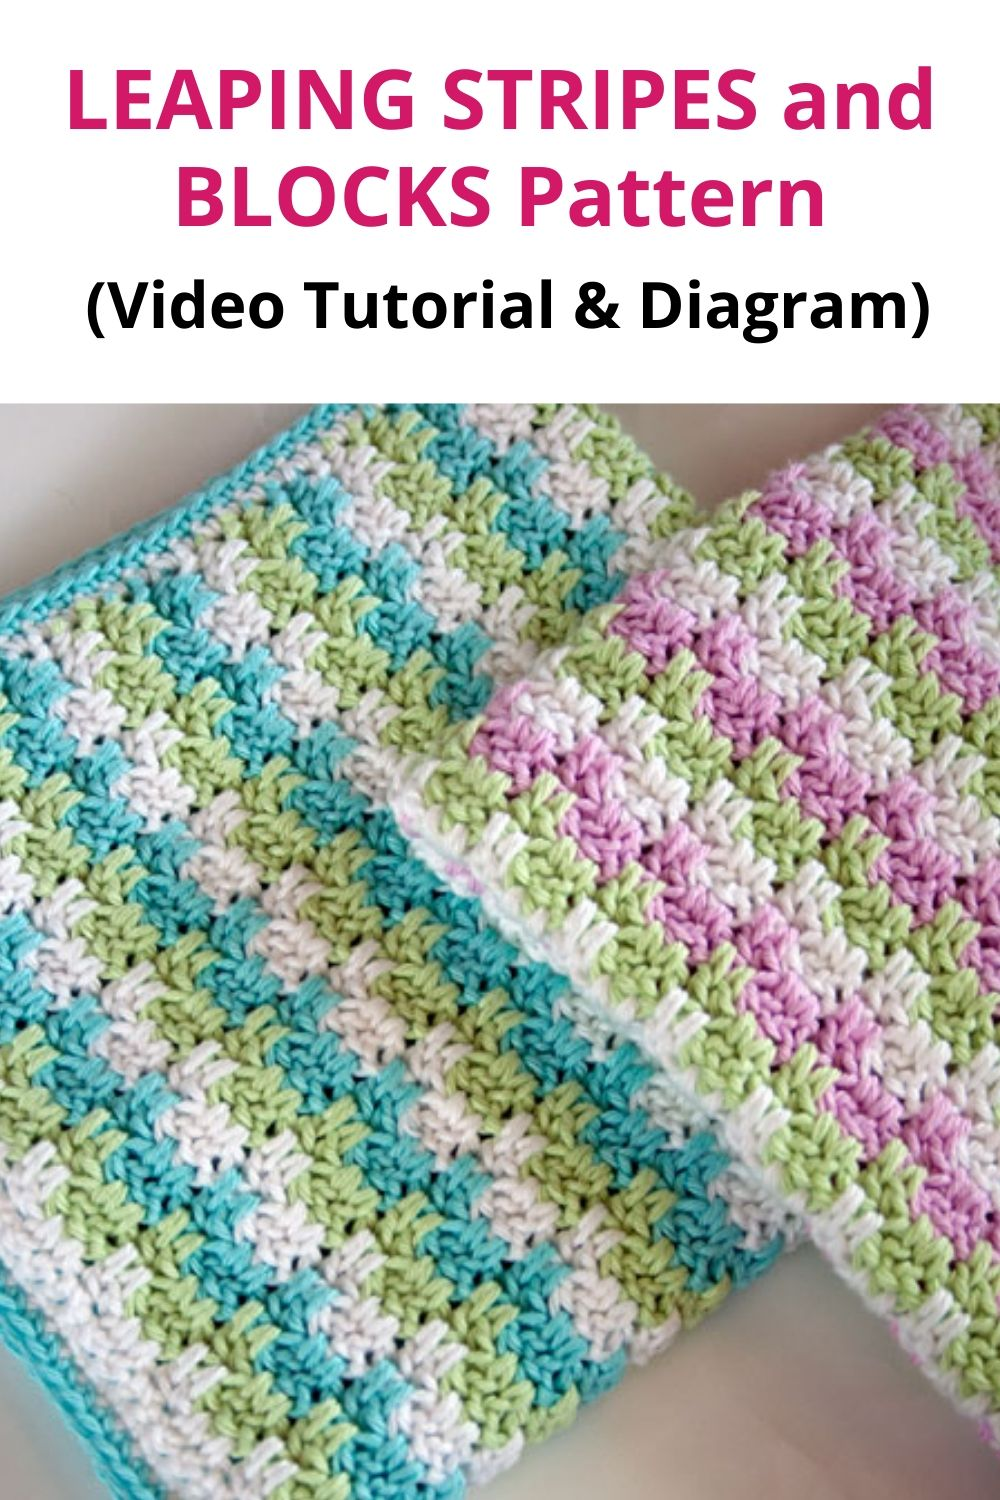 How to Crochet the LEAPING STRIPES and BLOCKS Pattern (Video Tutorial & Diagram)